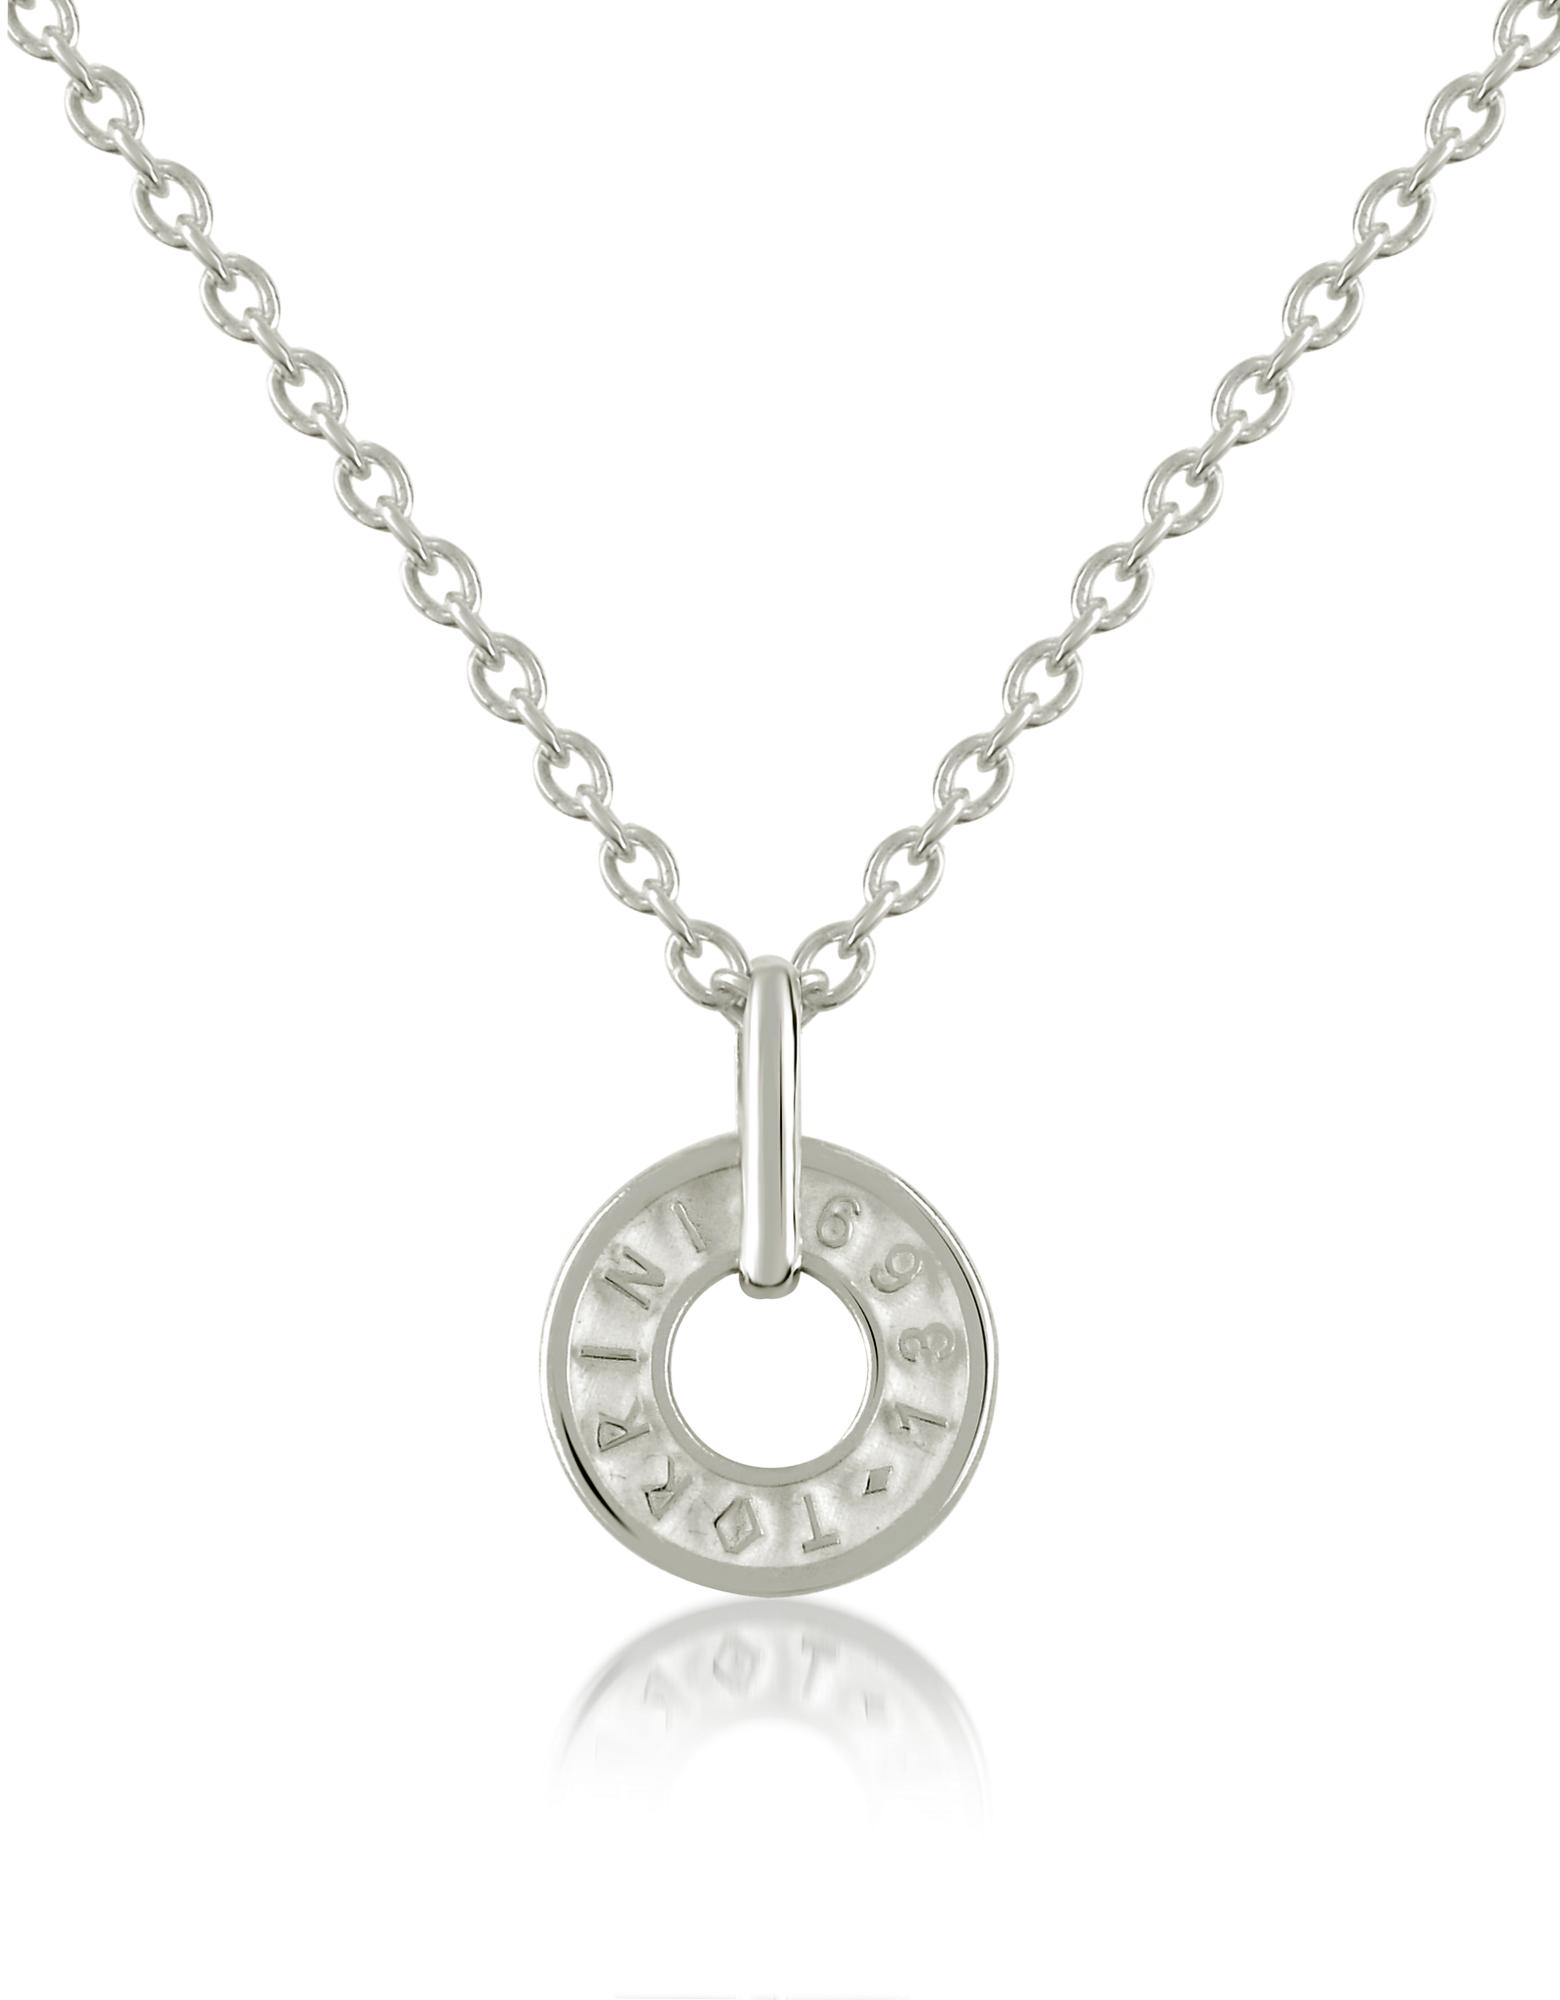 Torrini Coin 1369 Sterling Silver Charm Necklace